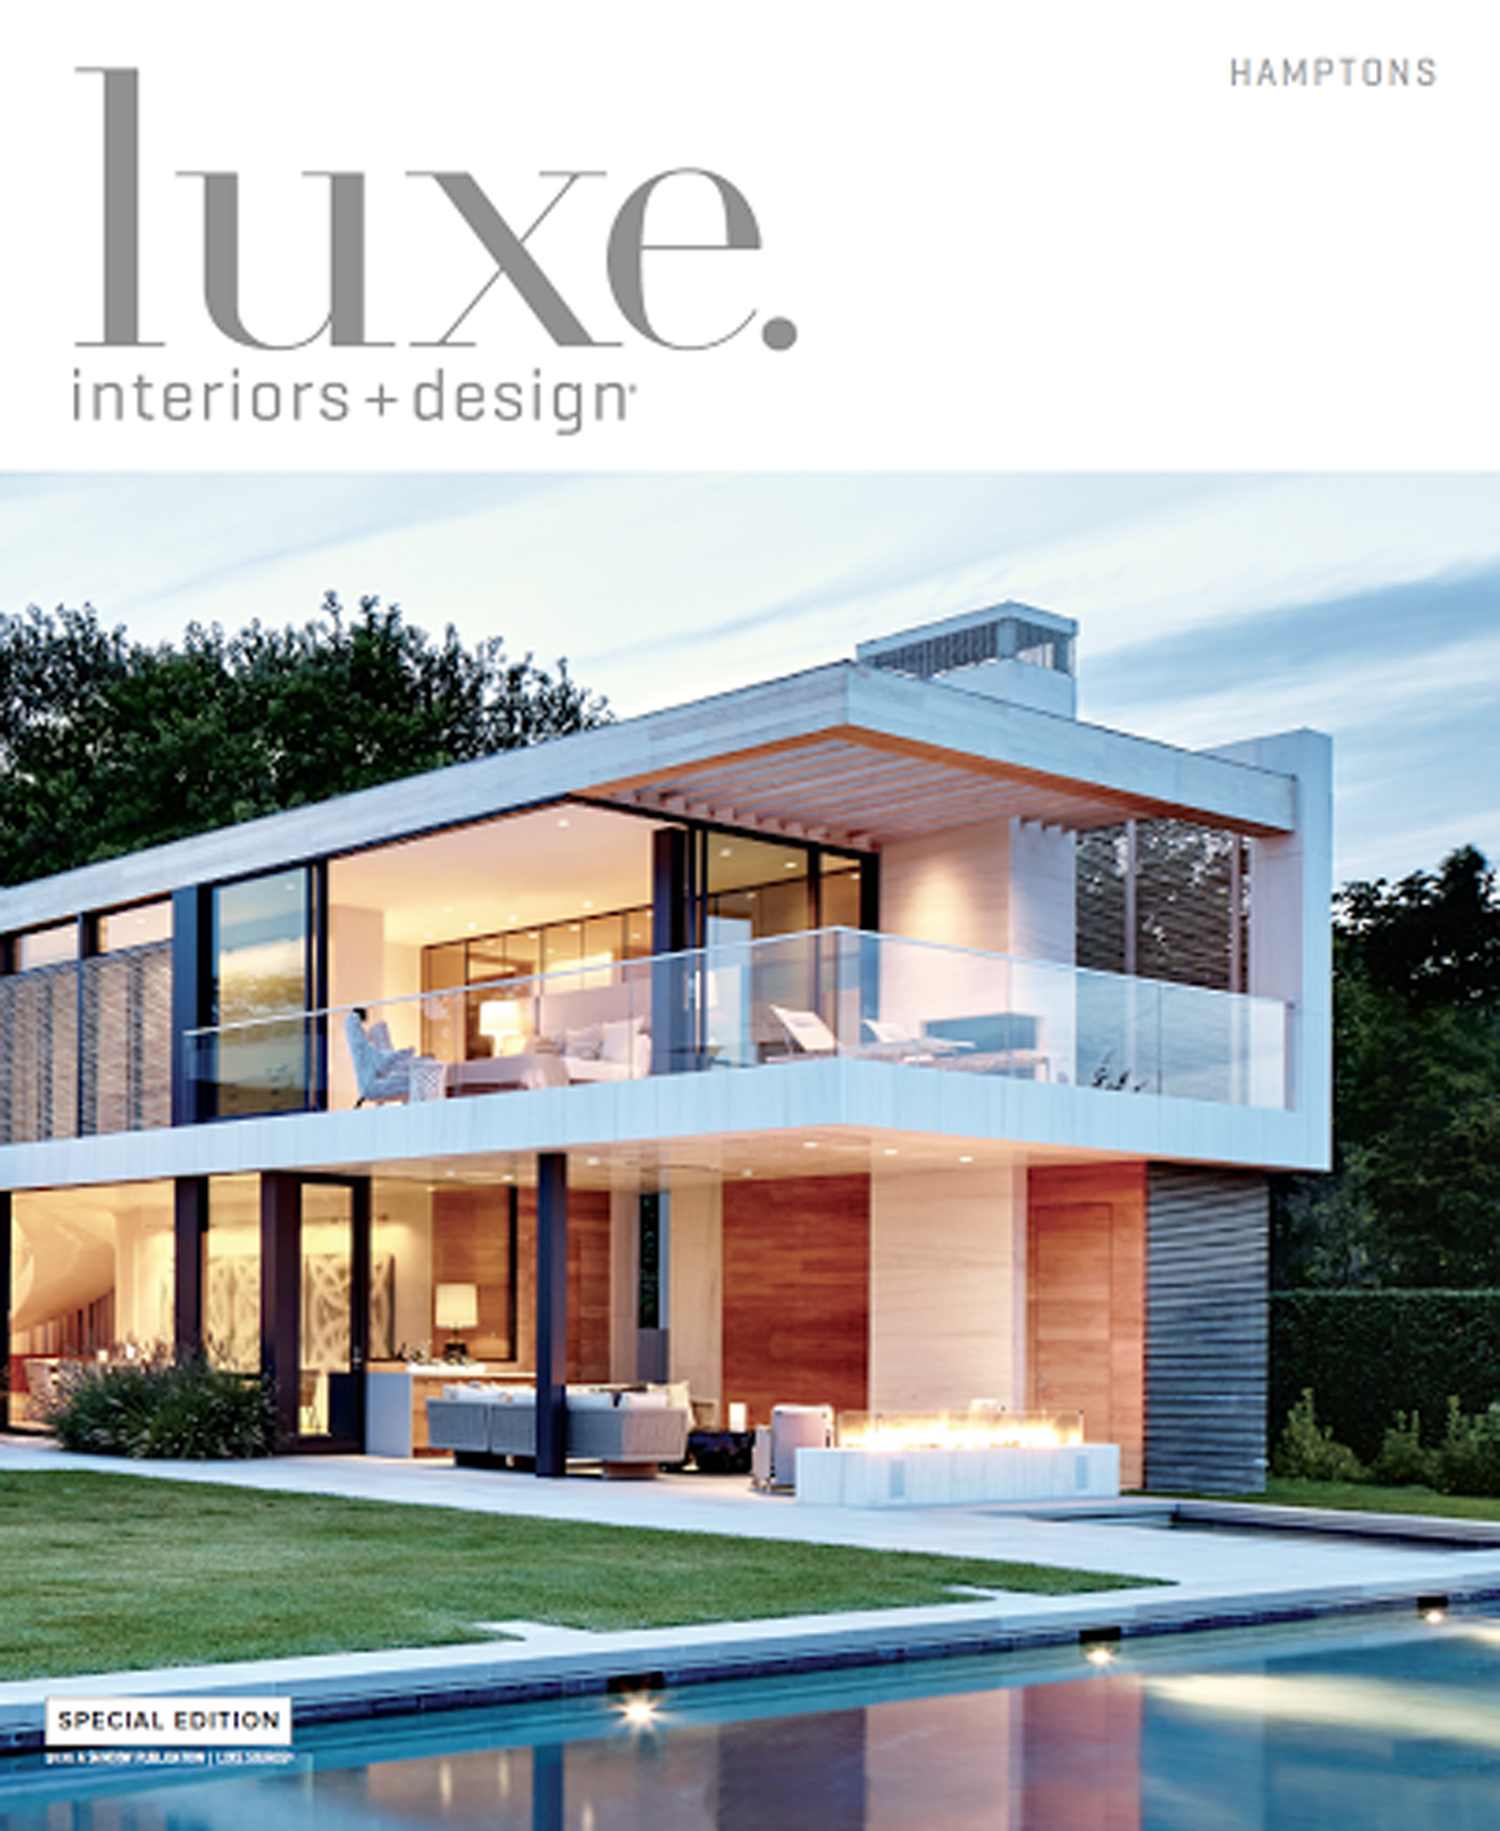 Luxe Interiors + Design   The Hamptons 50